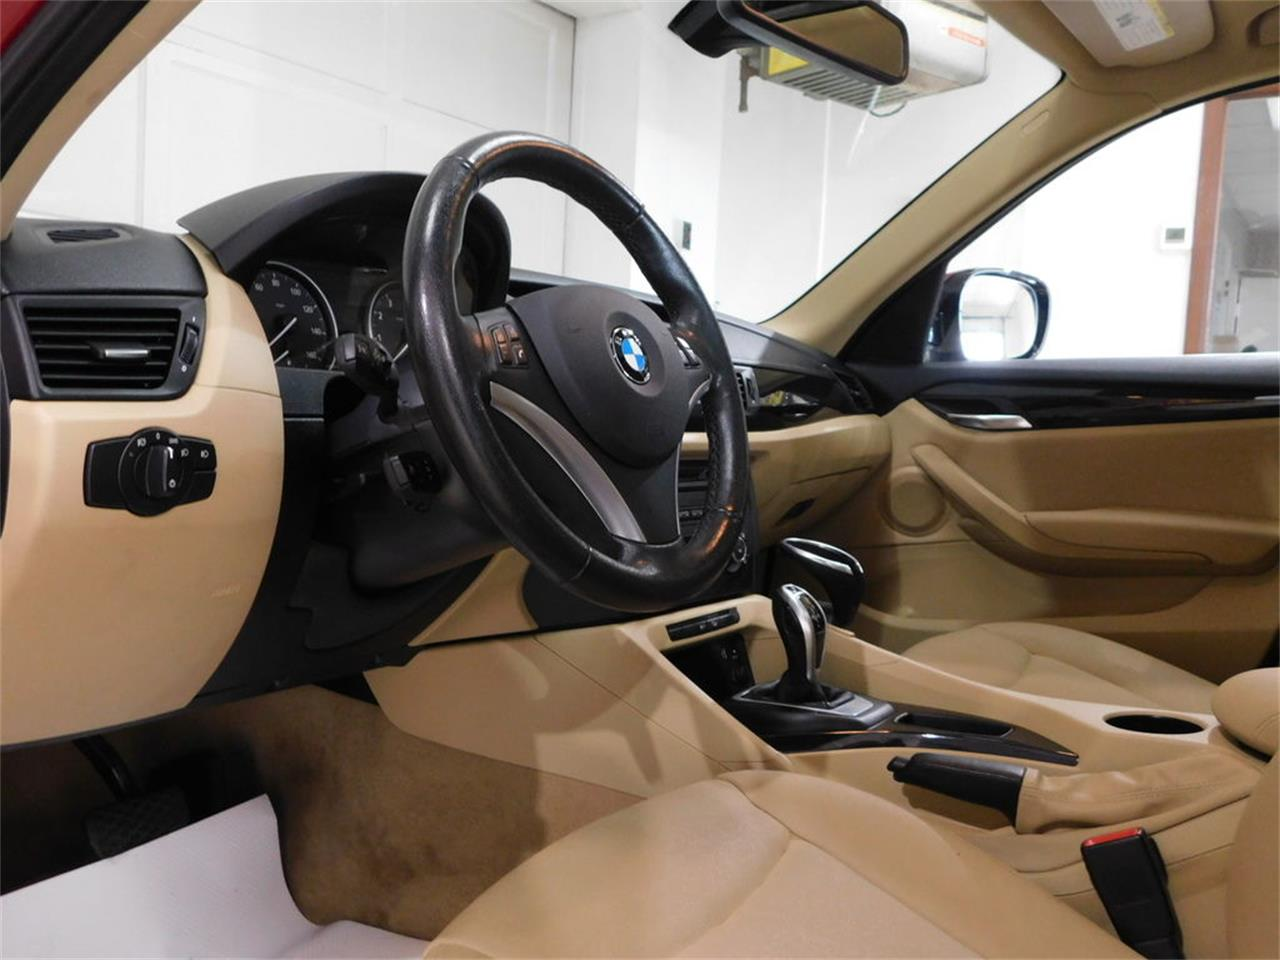 2012 BMW X1 (CC-1421550) for sale in Hamburg, New York